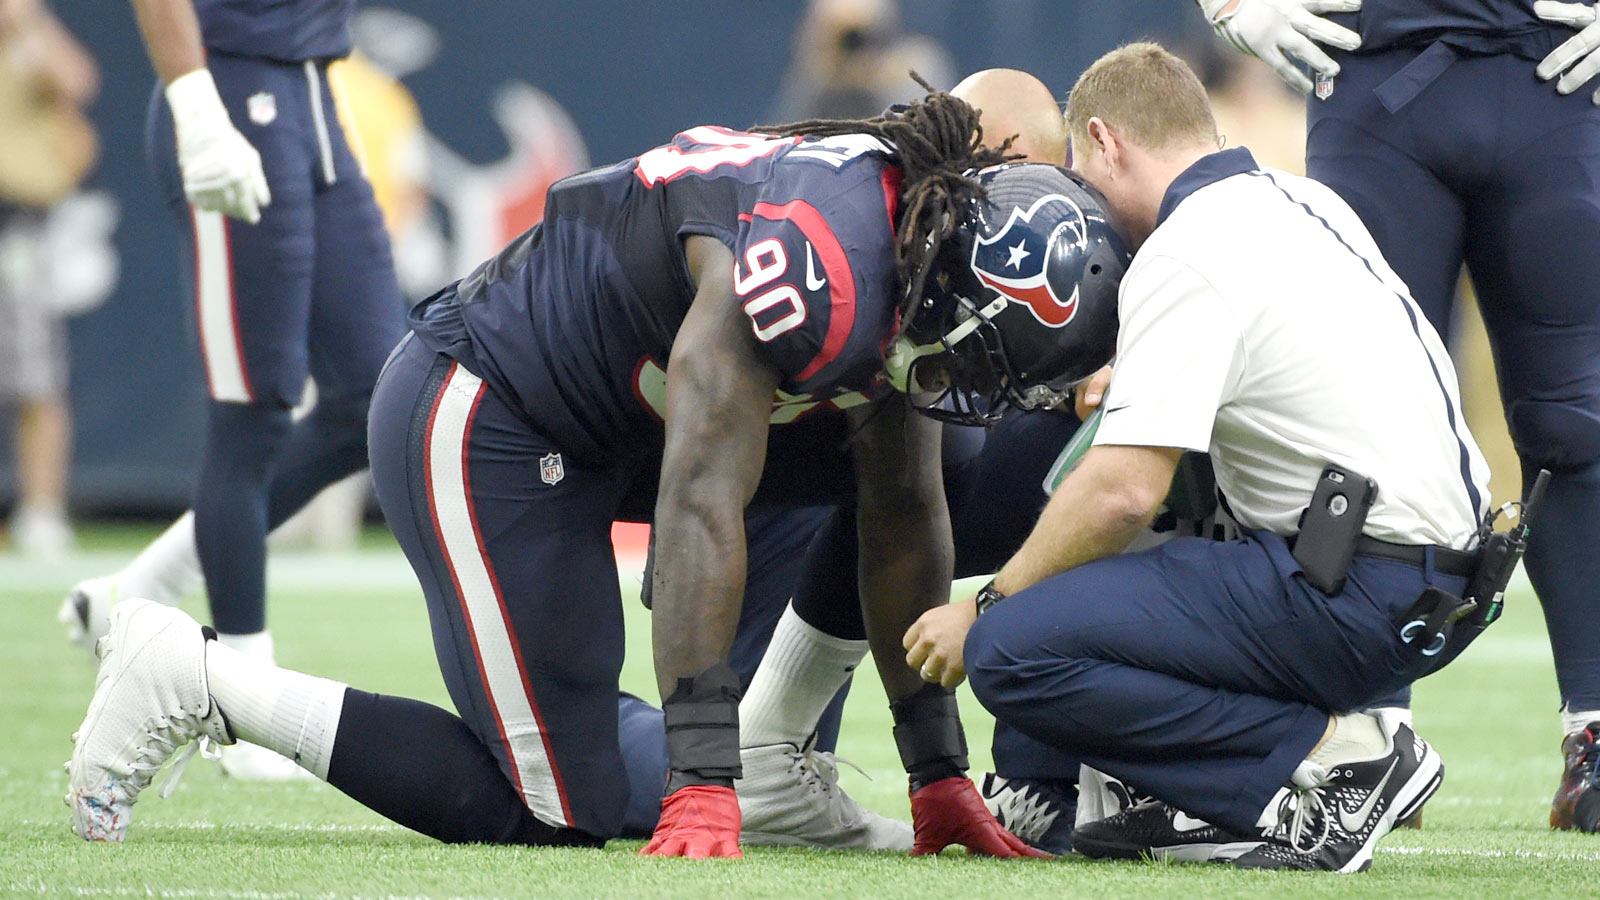 Houston sees progress from Clowney amid injuries